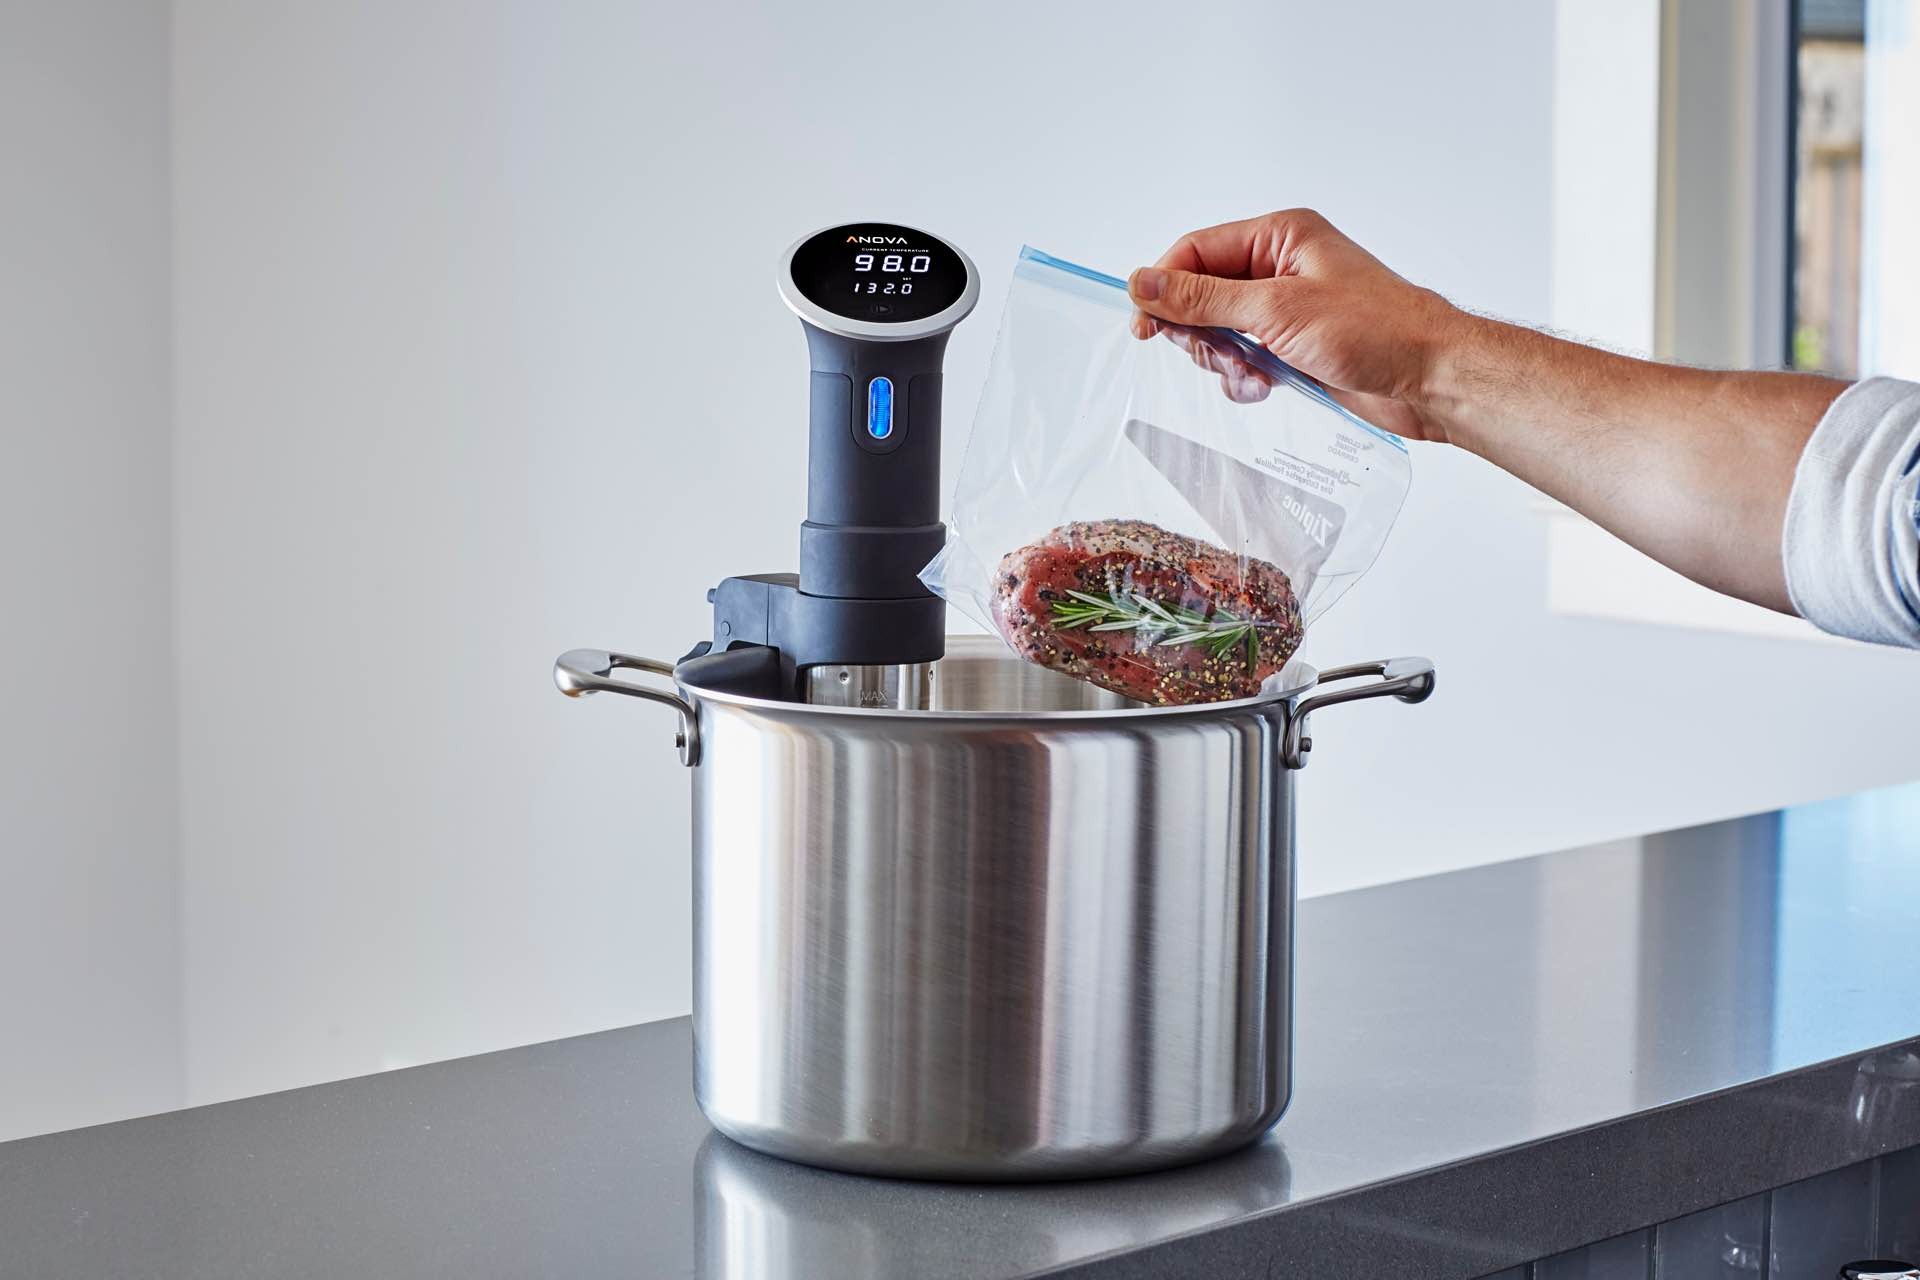 Anova Culinary's sous vide precision cooker. ($129 for the 800-watt Bluetooth version, or $199 for the newer 900-watt version that sports both Bluetooth and Wi-Fi connectivity)